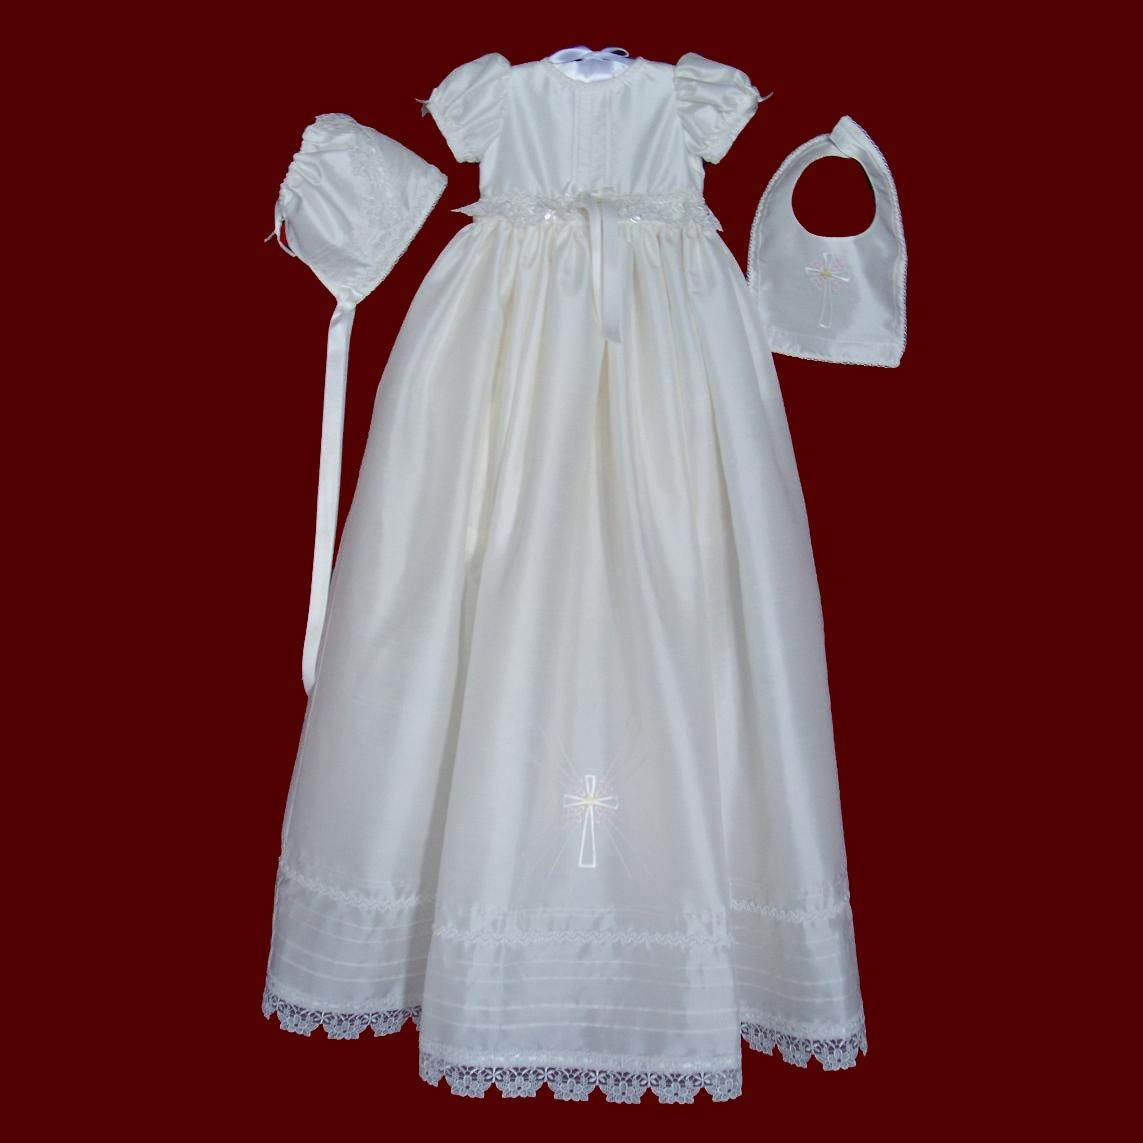 Baptism Gowns | Christening Gowns For Baby Girls | christening gowns ...